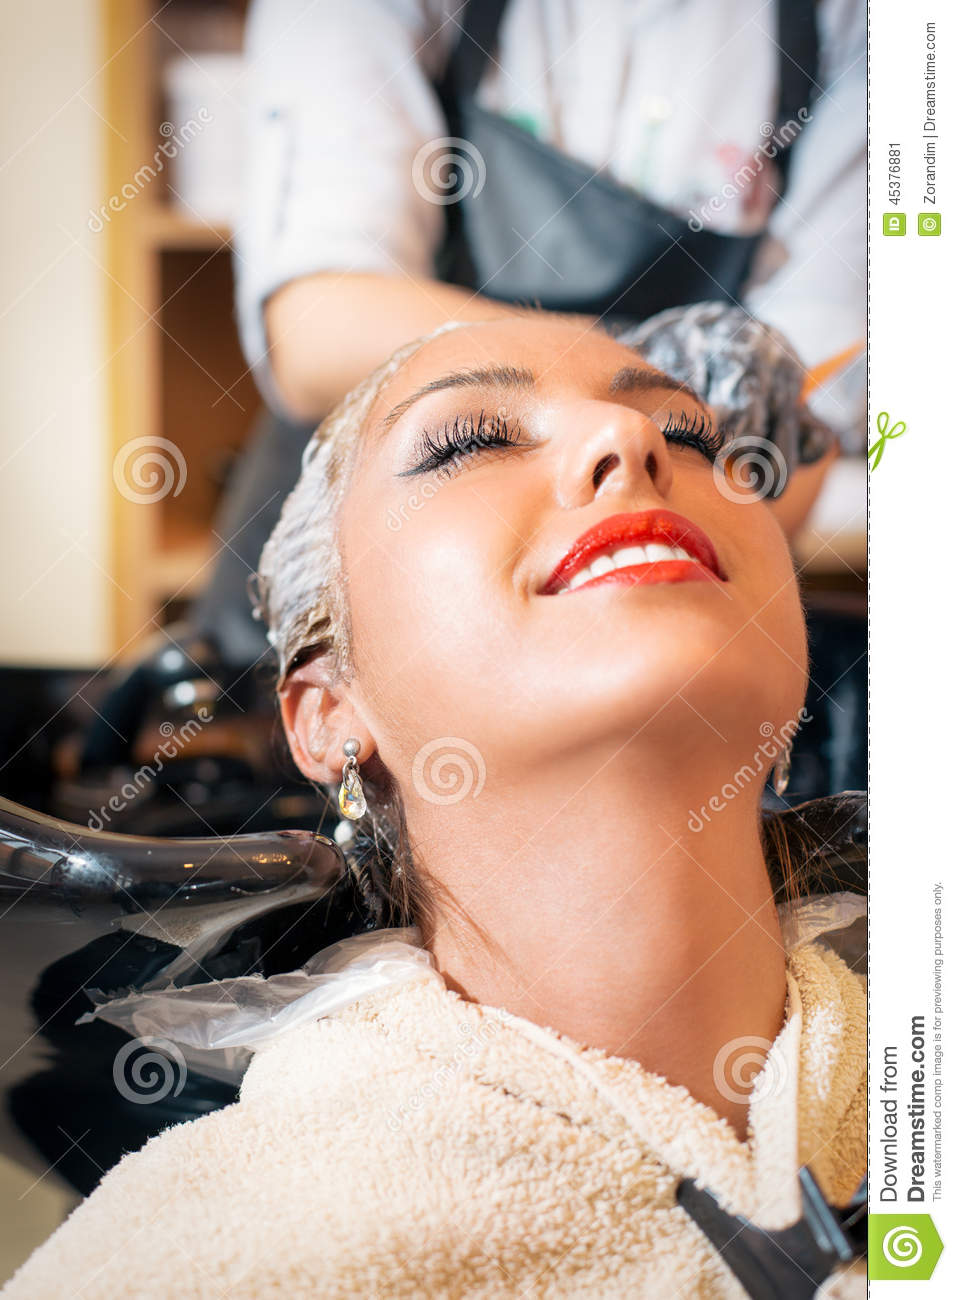 Hair Coloring In The Salon Stock Image Image Of Produce 45376881